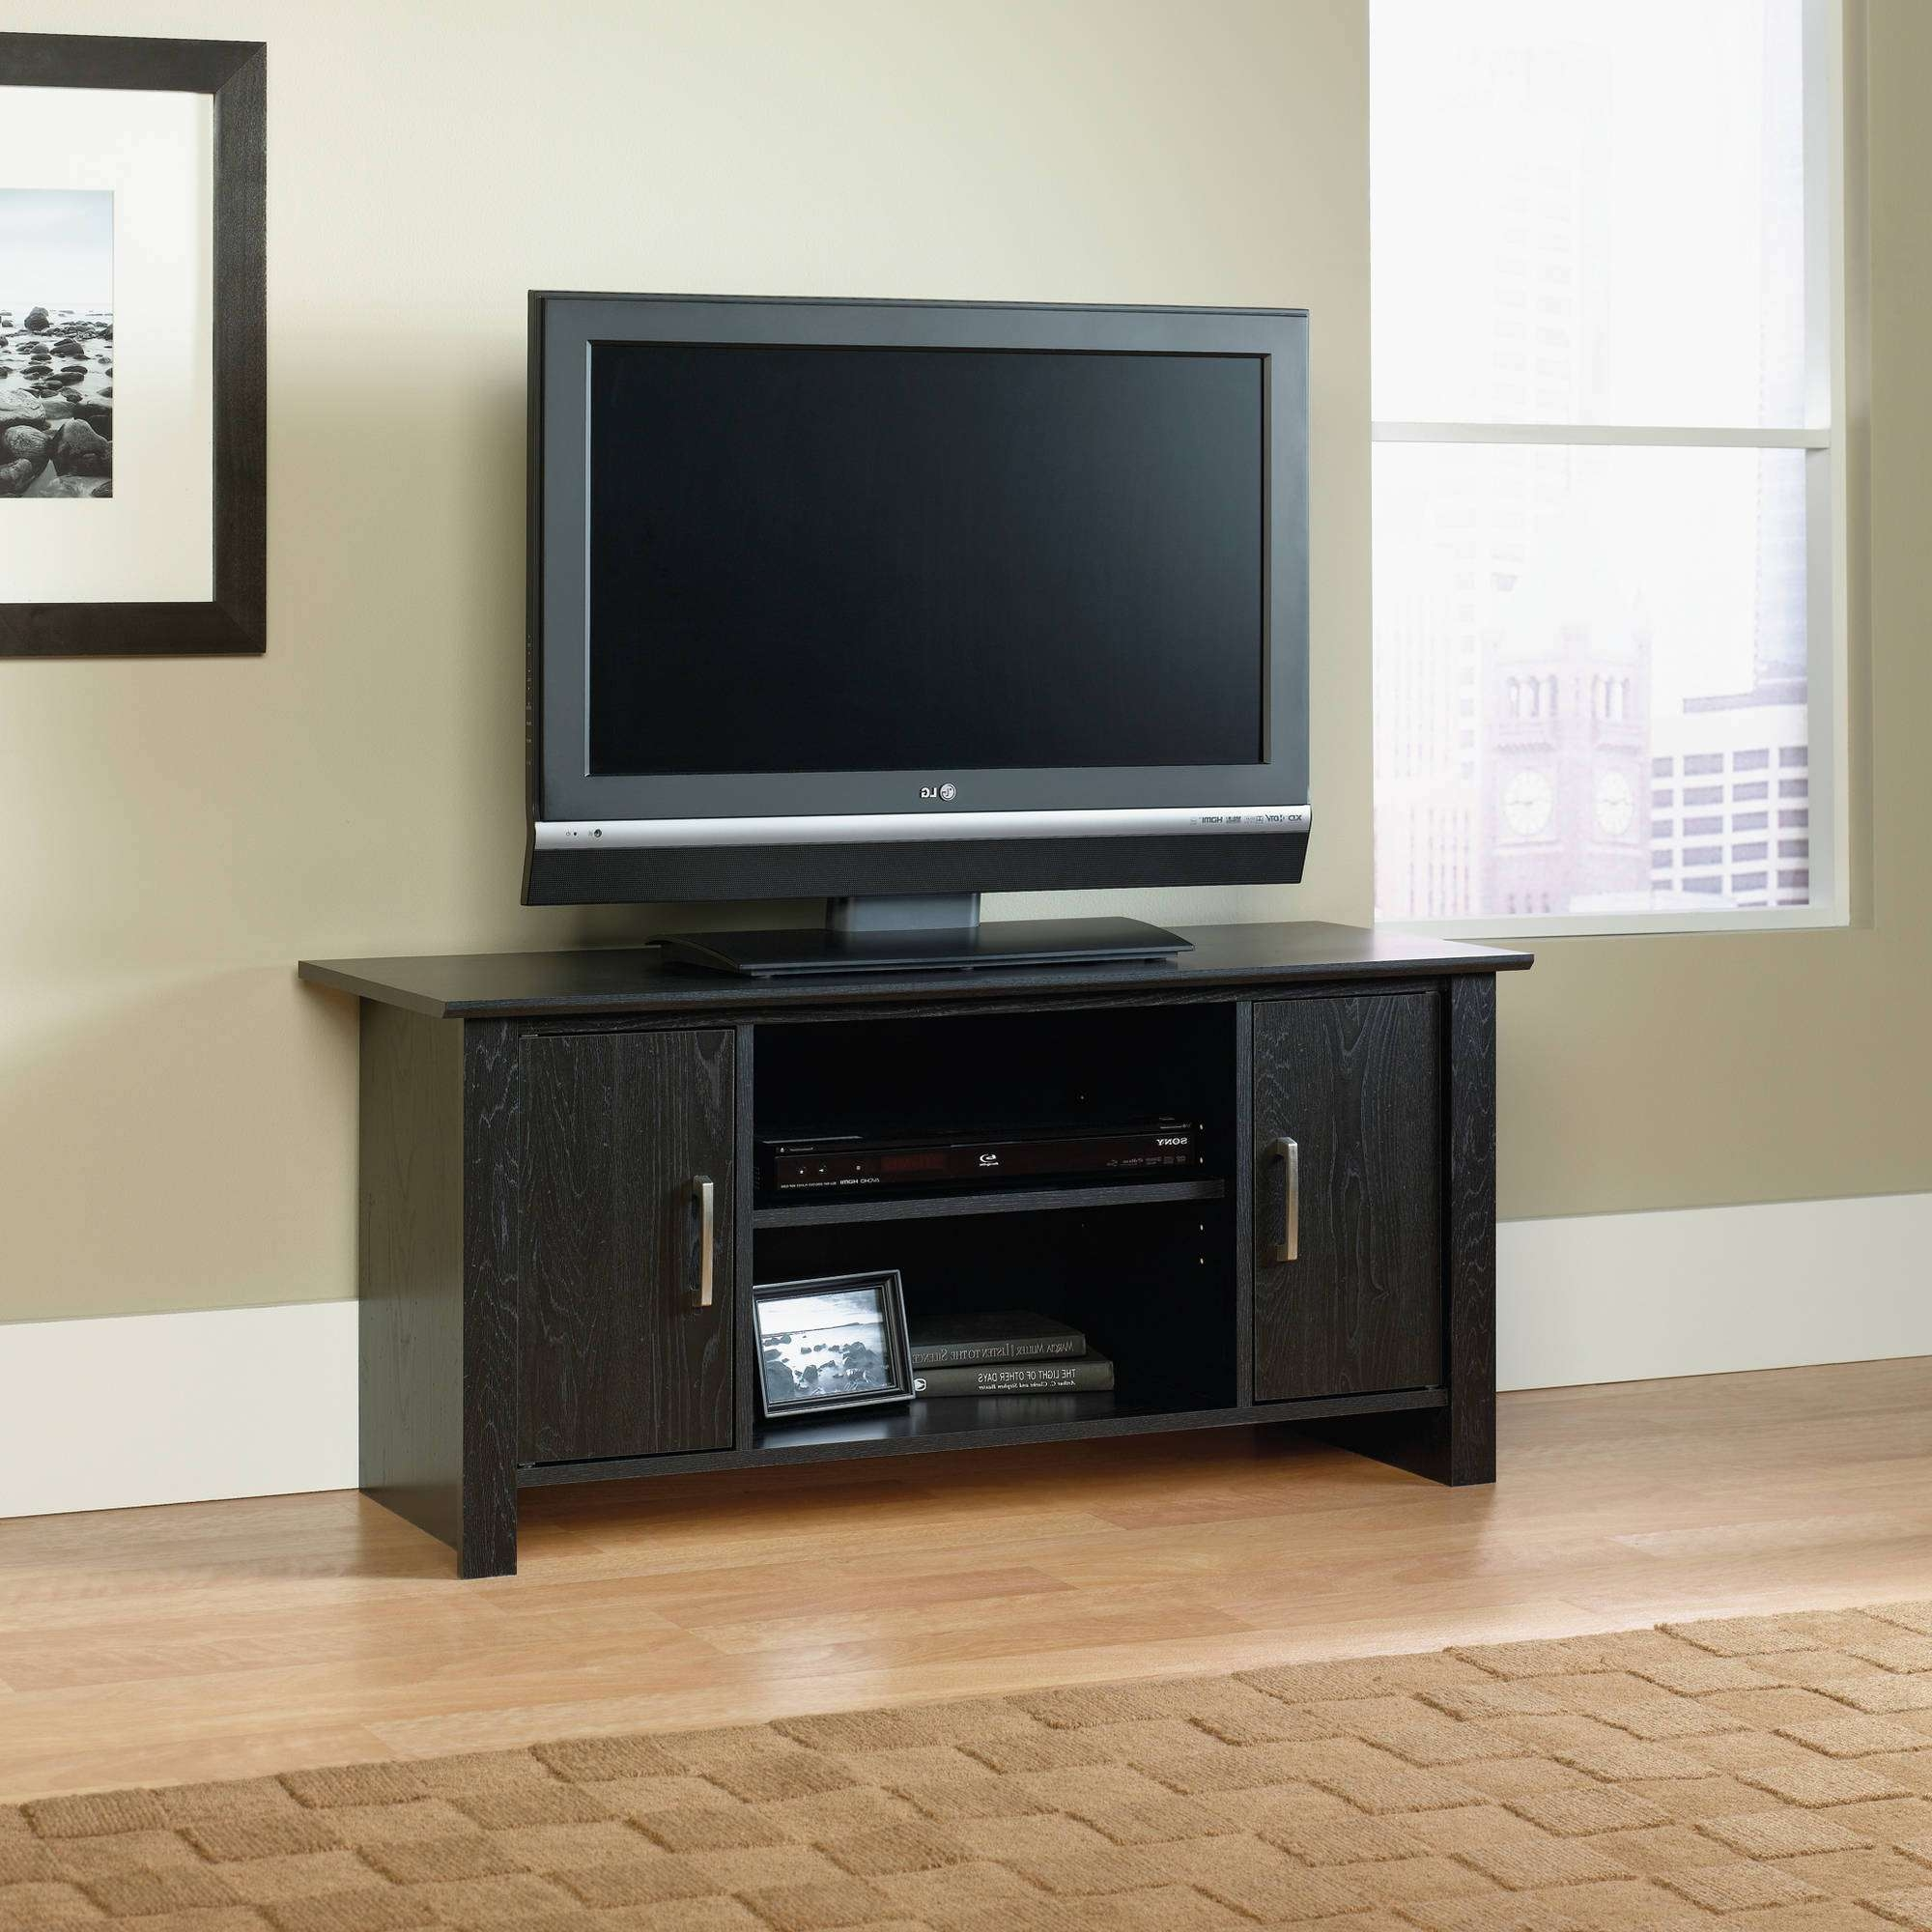 "Mainstays Tv Stand For Flat Screen Tvs Up To 47"", Multiple Finish Intended For Narrow Tv Stands For Flat Screens (View 6 of 15)"